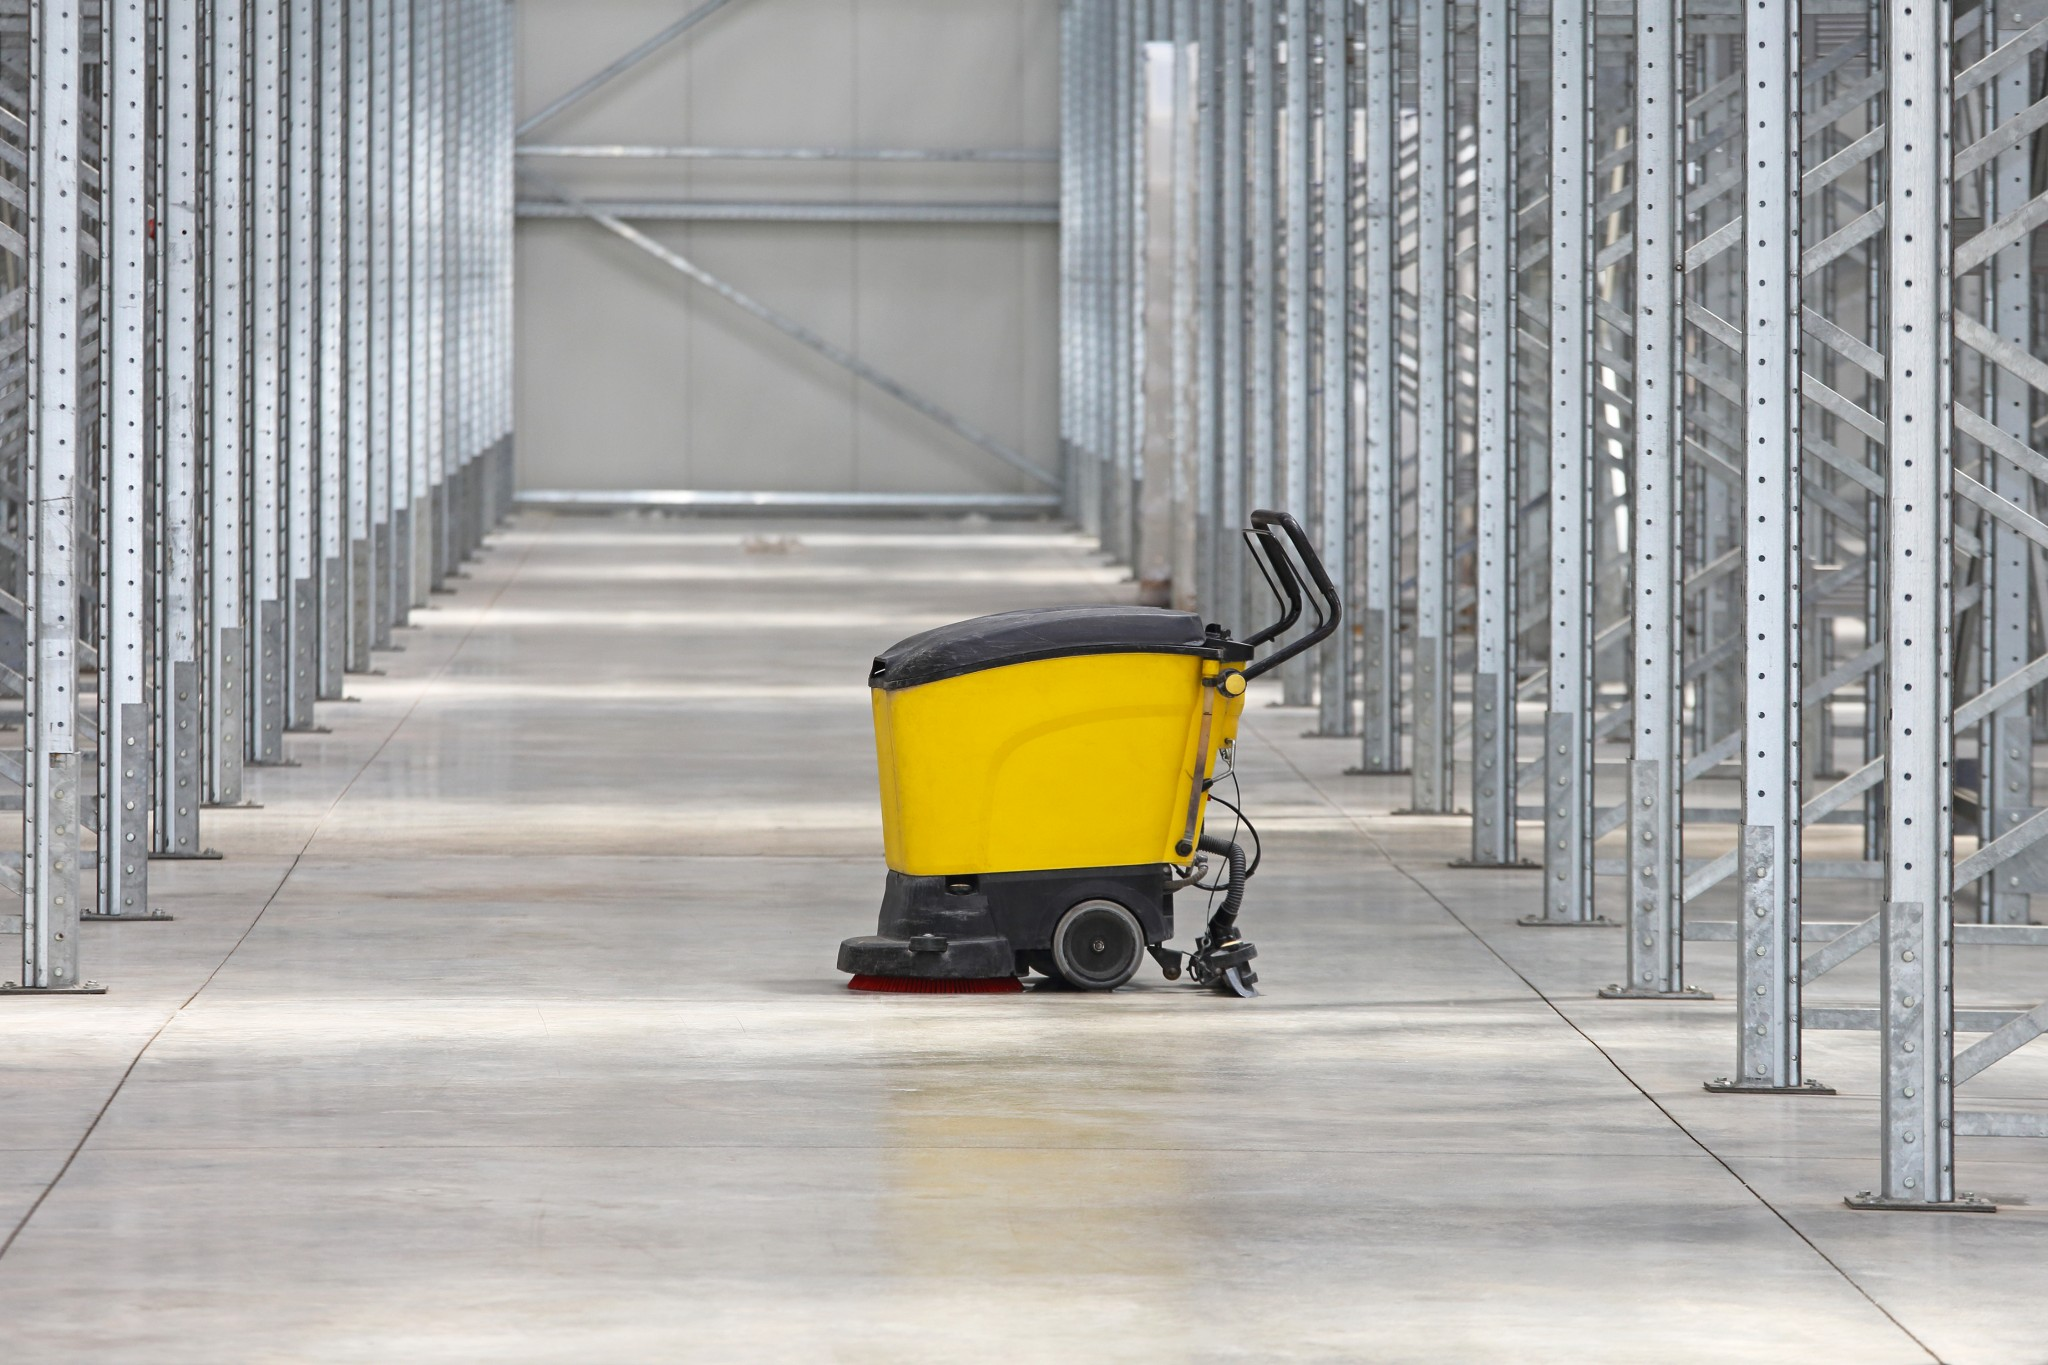 bigstock-Cleaning-Warehouse-101556398